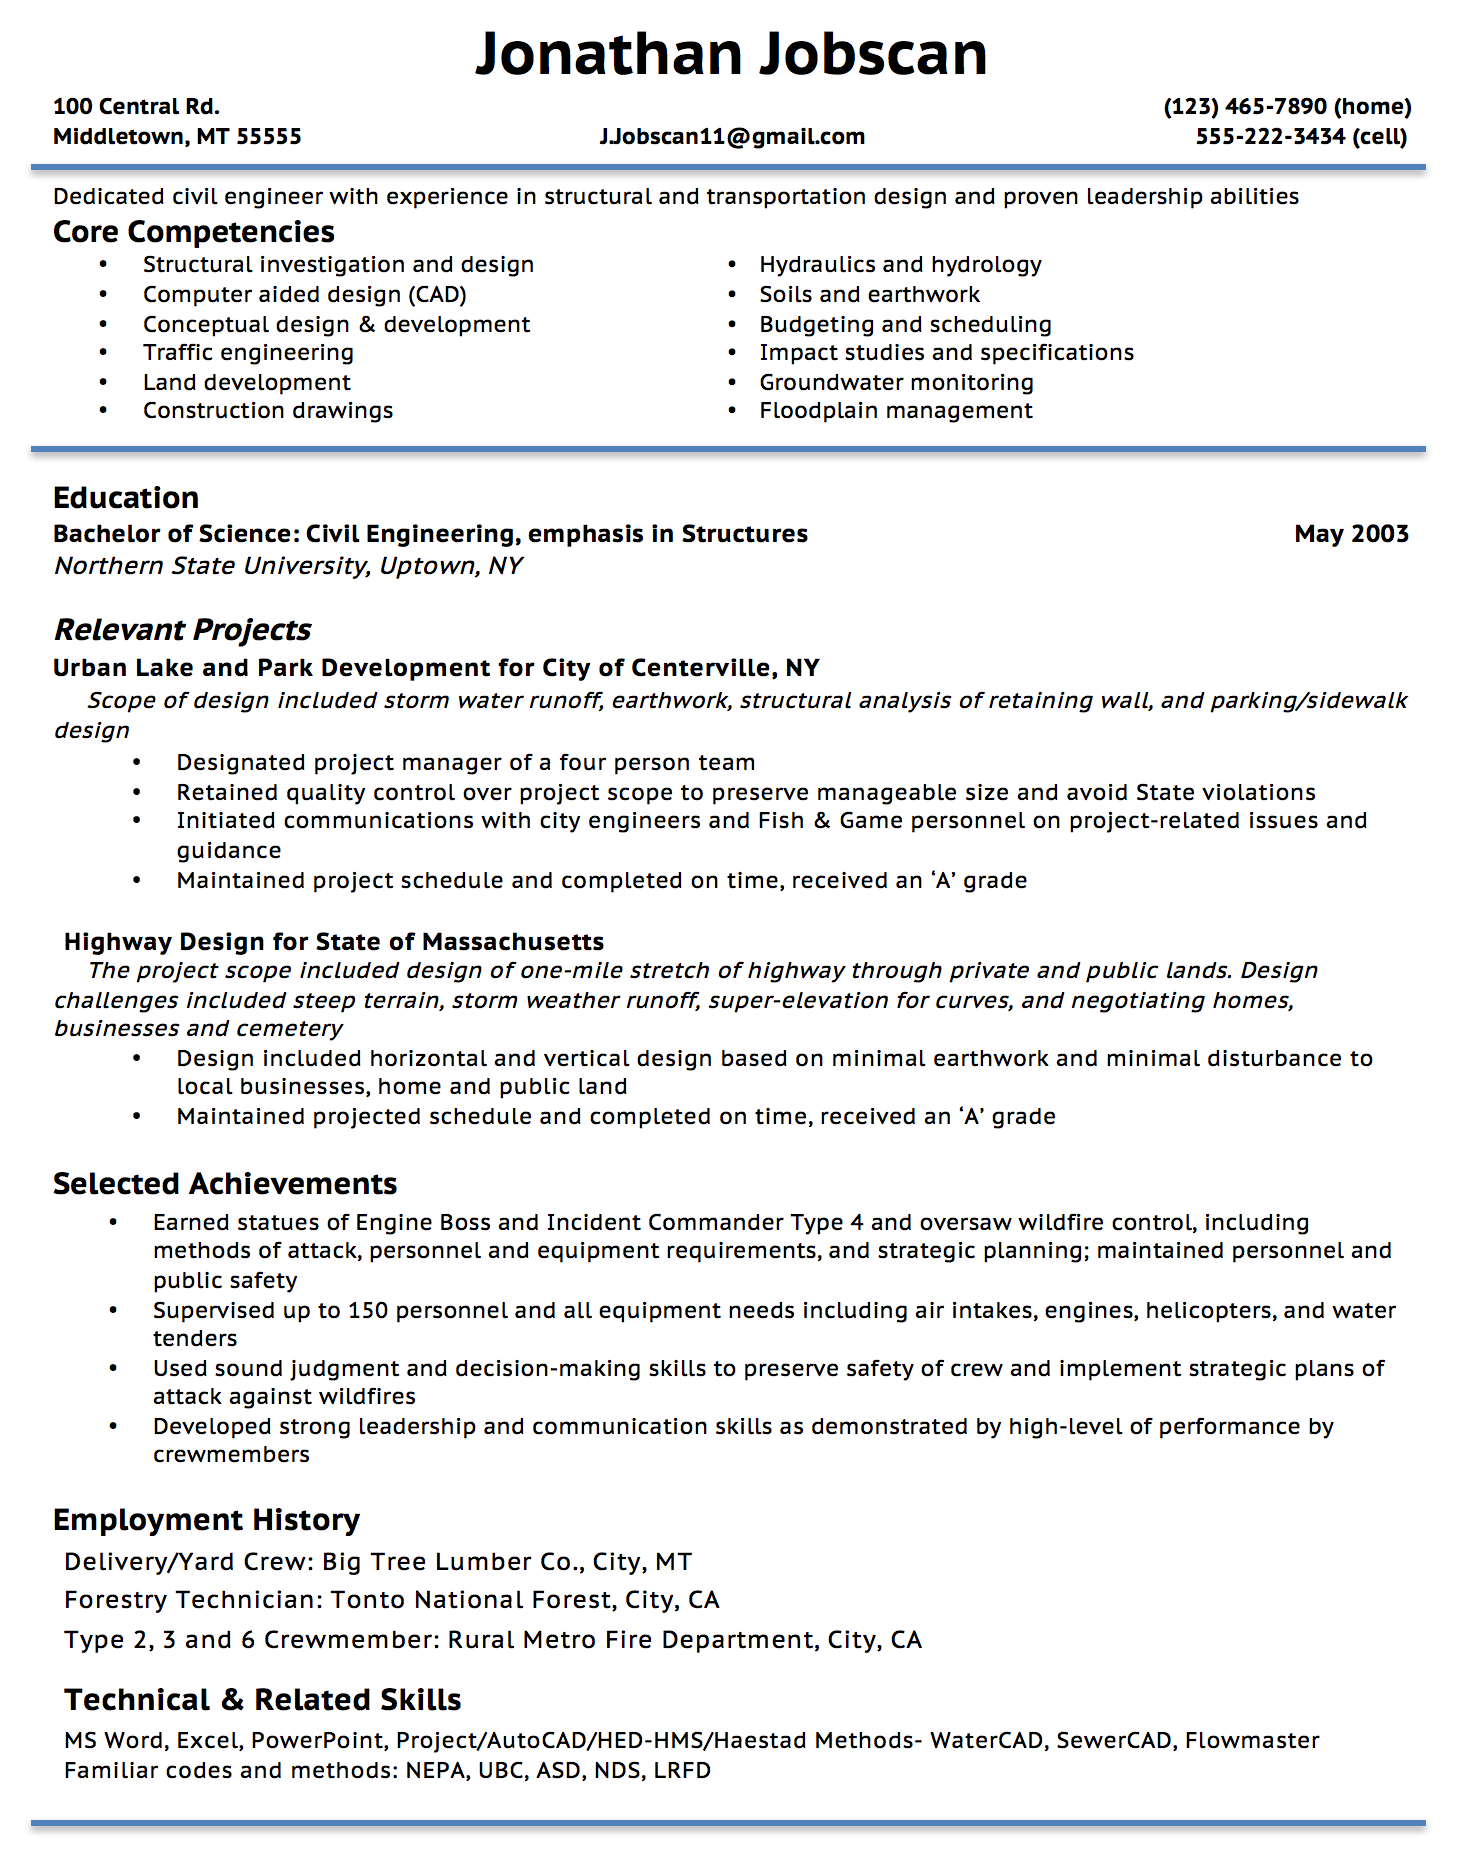 Functional Resume Example  How To Do A Simple Resume